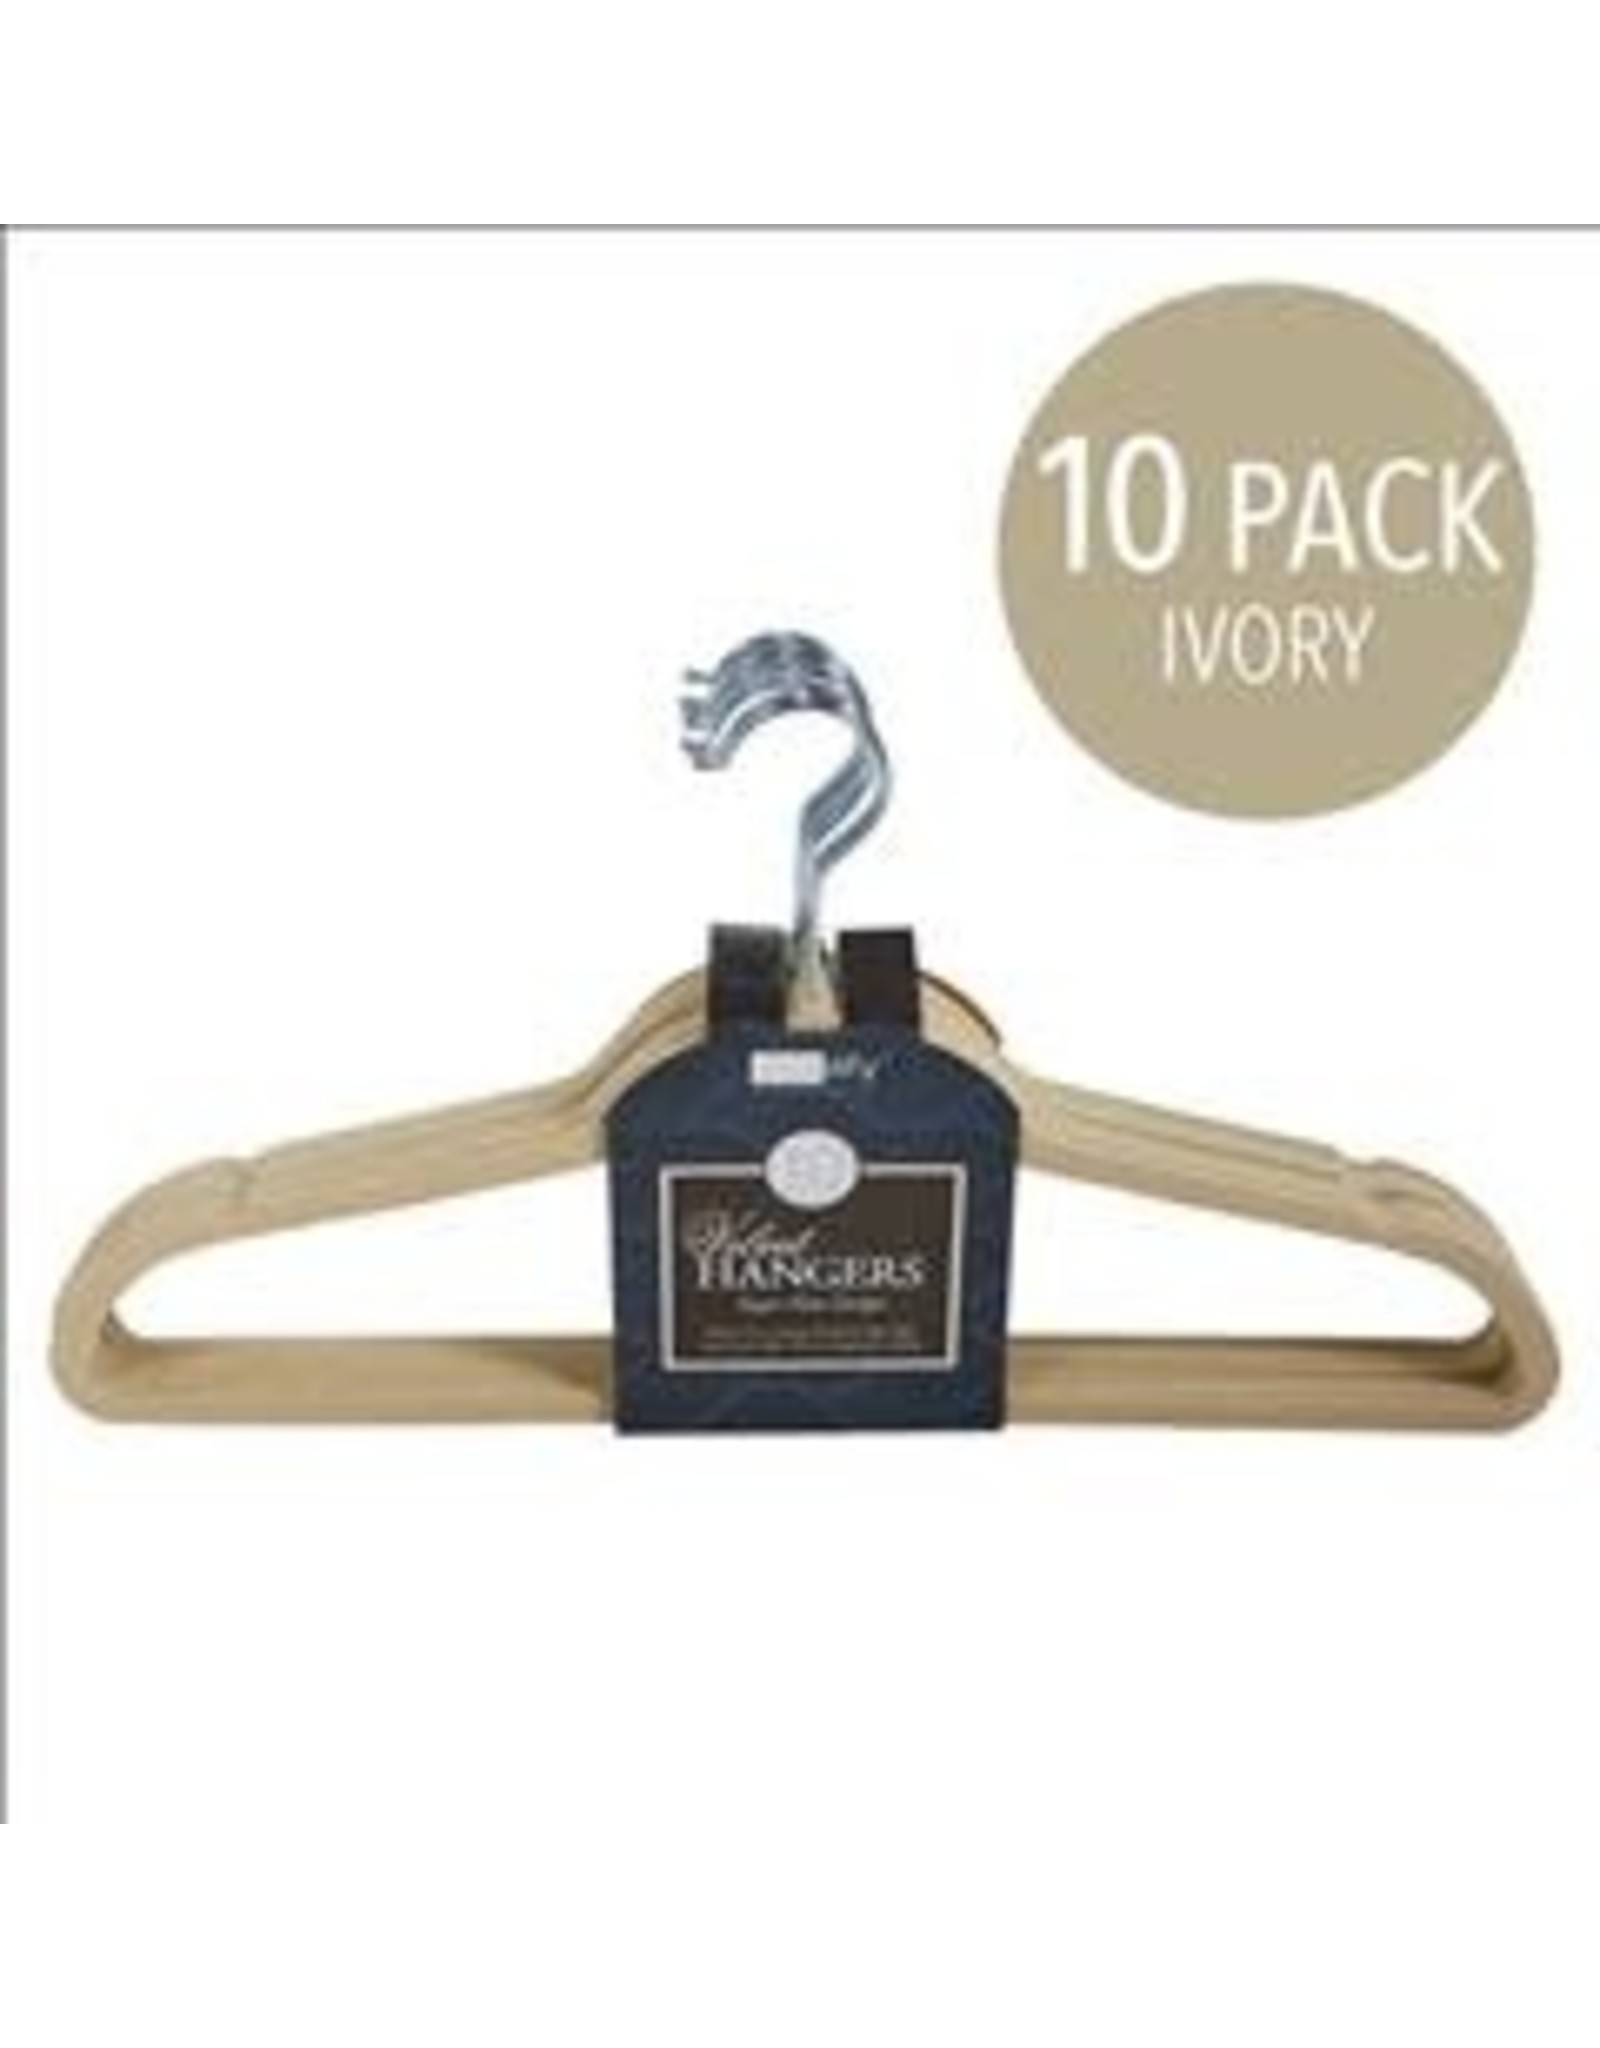 Huggable Basic Hangers 10PK